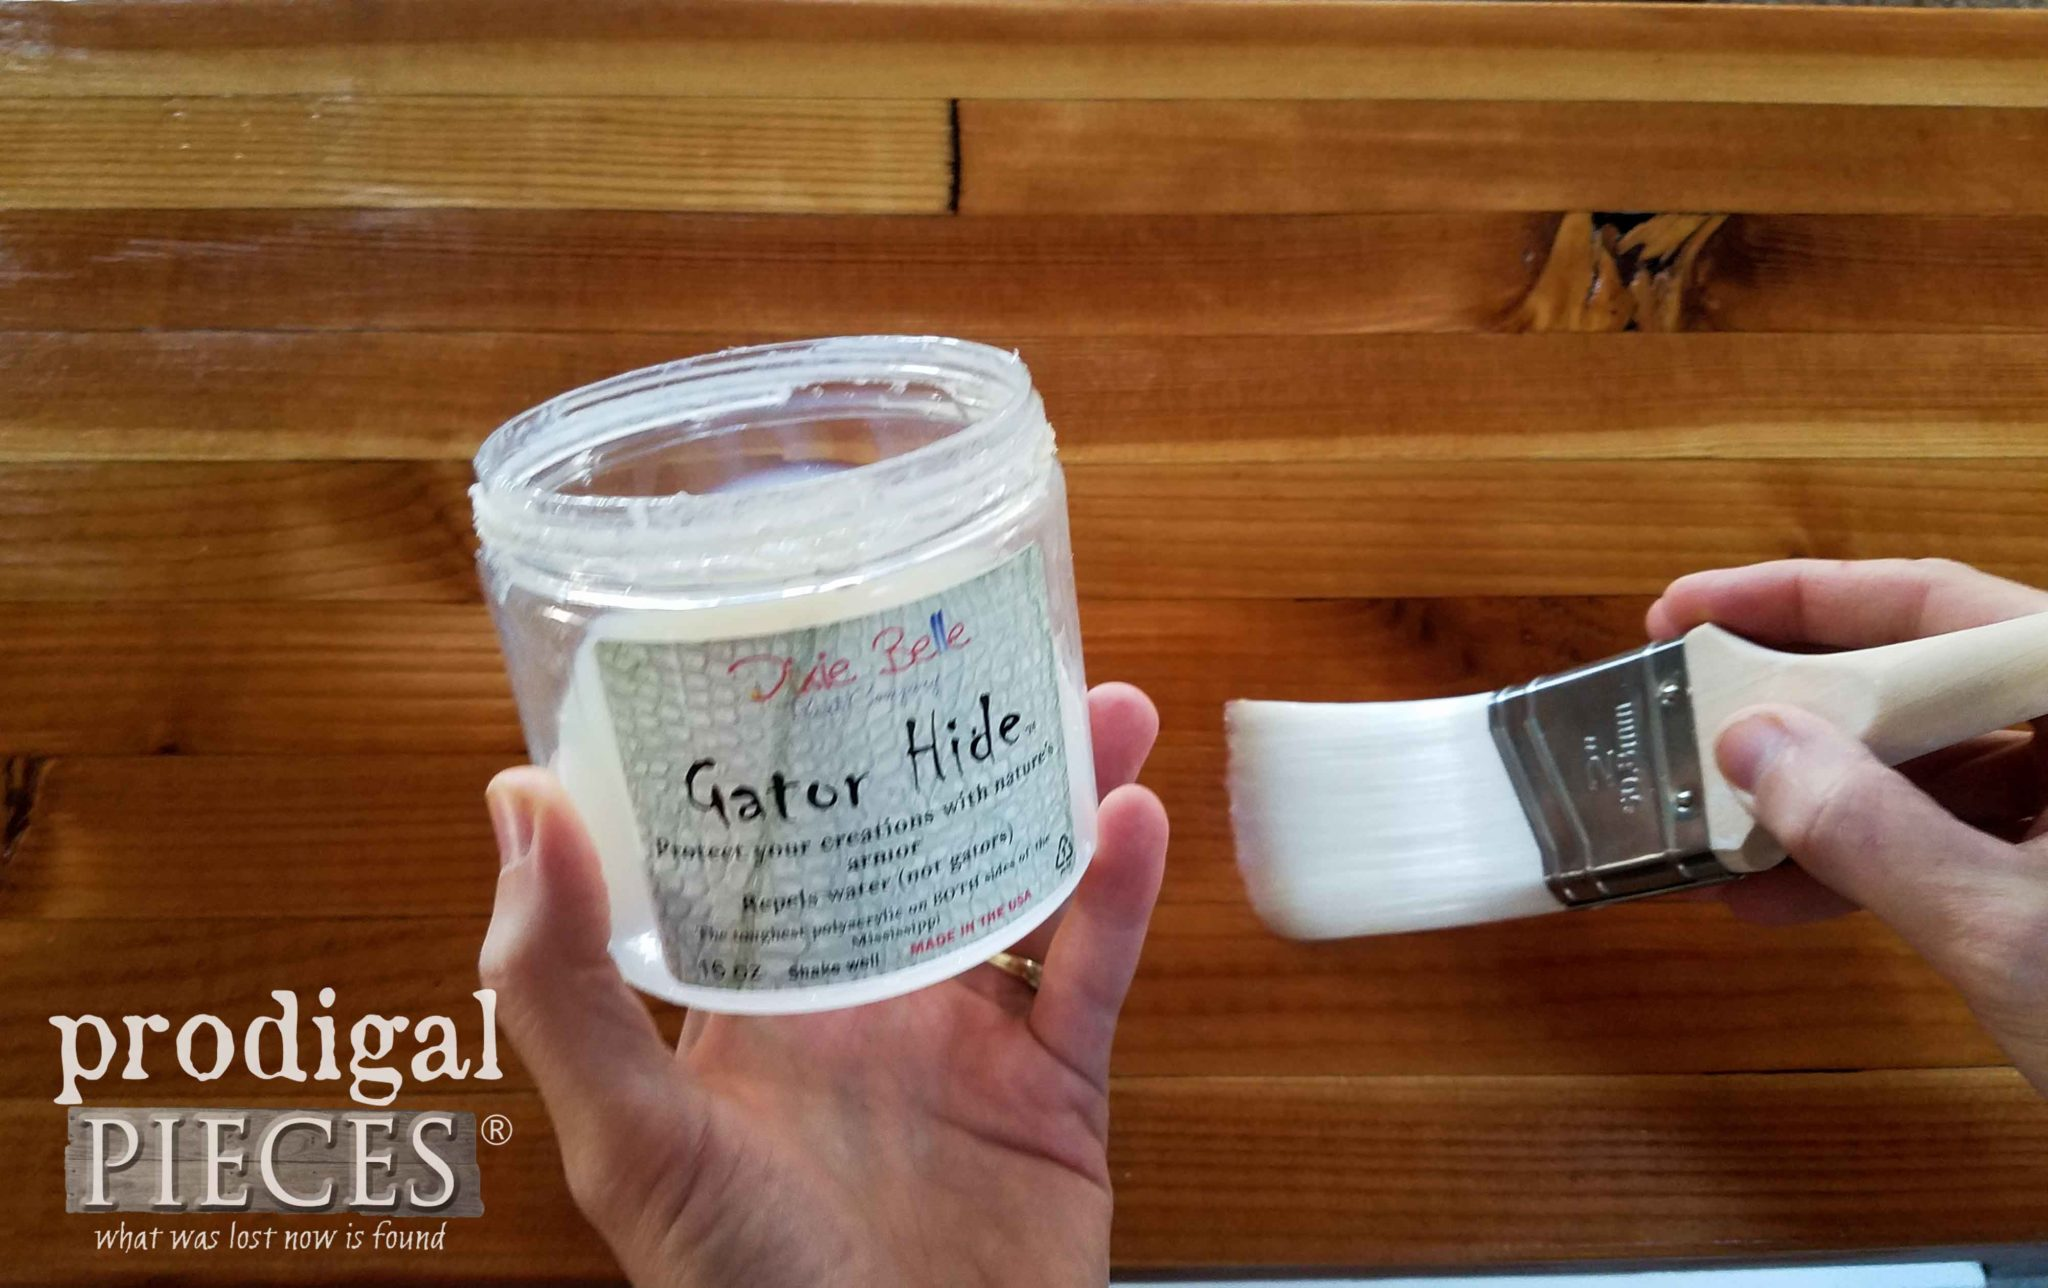 Dixie Belle Gator Hide for Topcoat of DIY Butcher Block Cart by Larissa of Prodigal Pieces | prodigalpieces.com